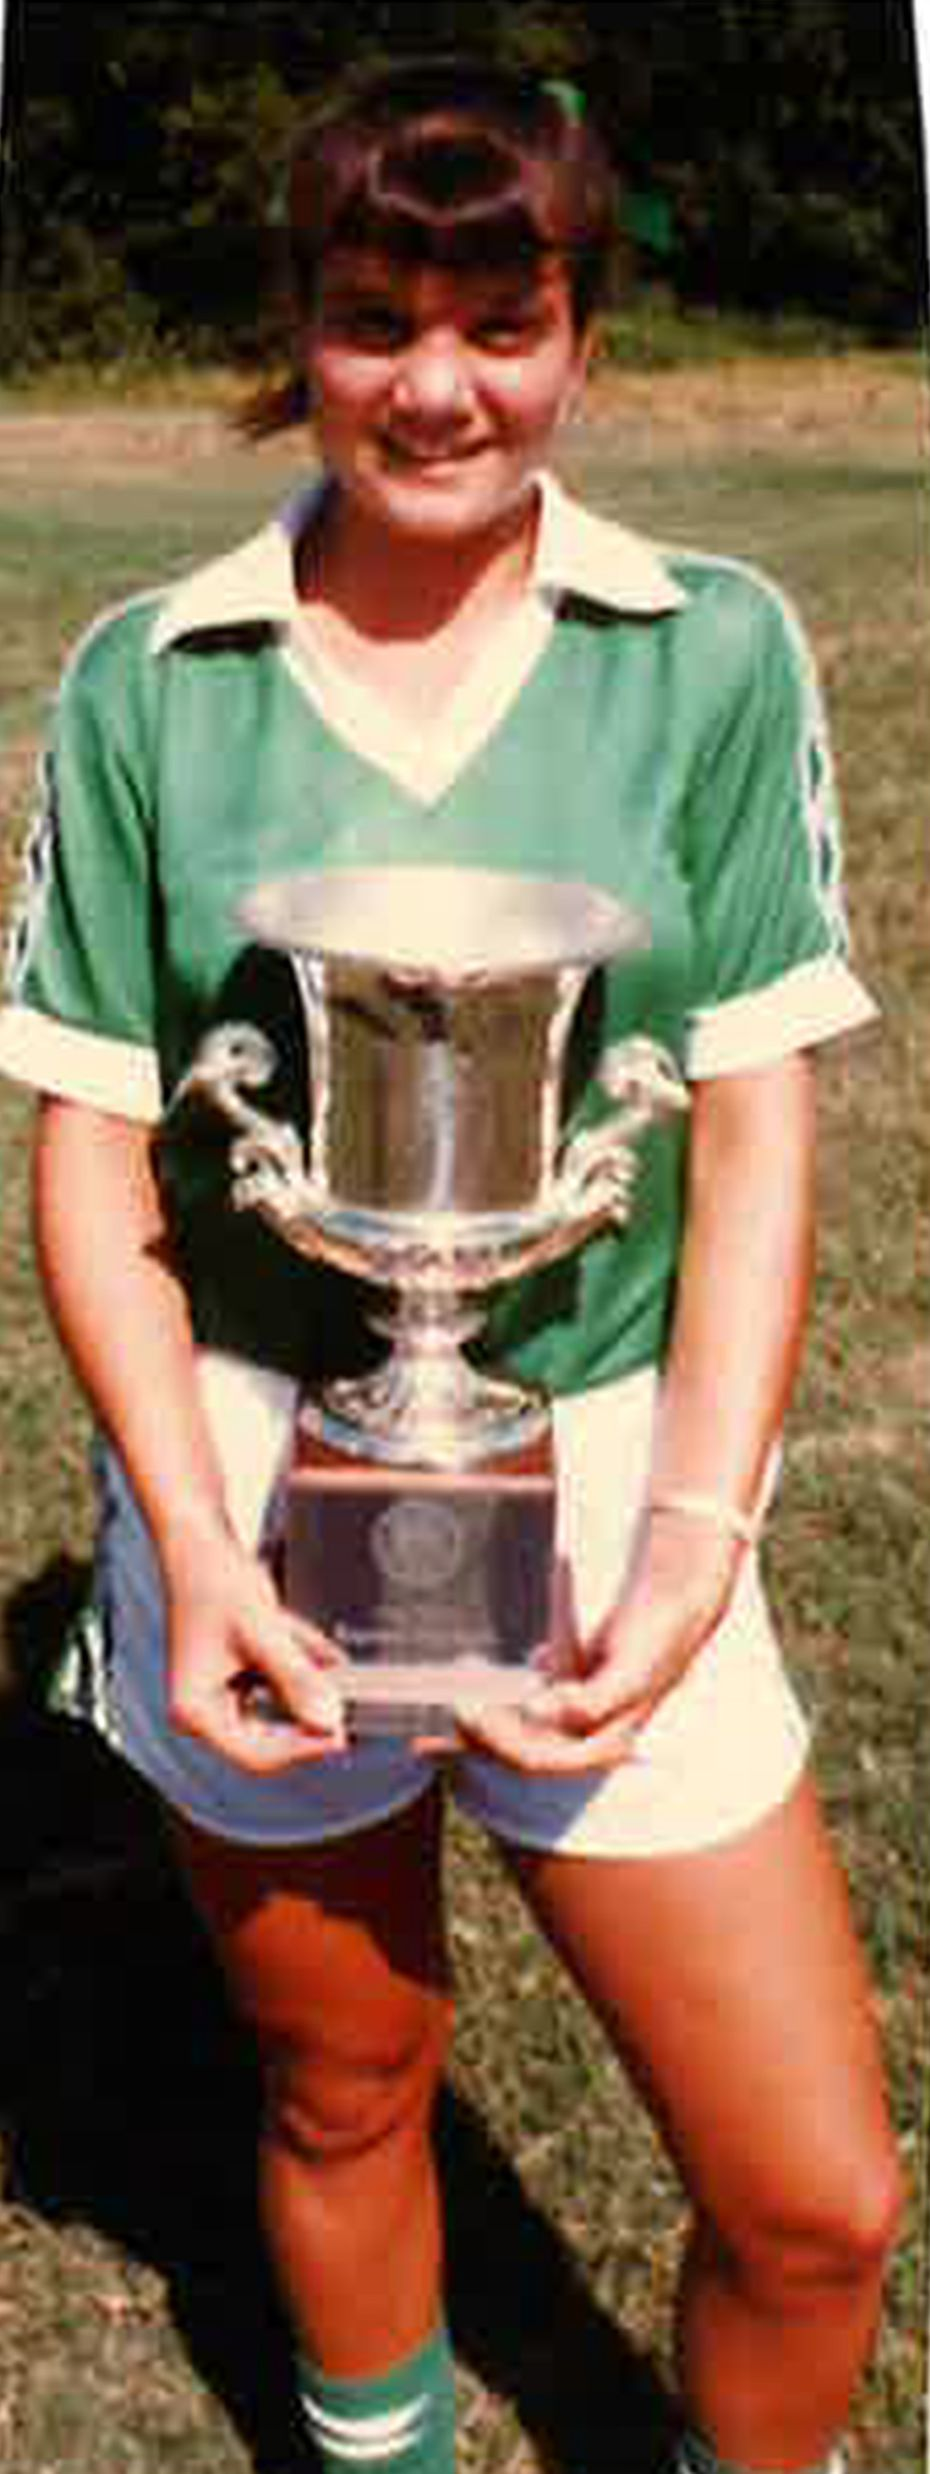 Laura Anton poses with the team's trophy after the D'Feeters Soccer Club won a regional championship in North Carolina in June 1983.